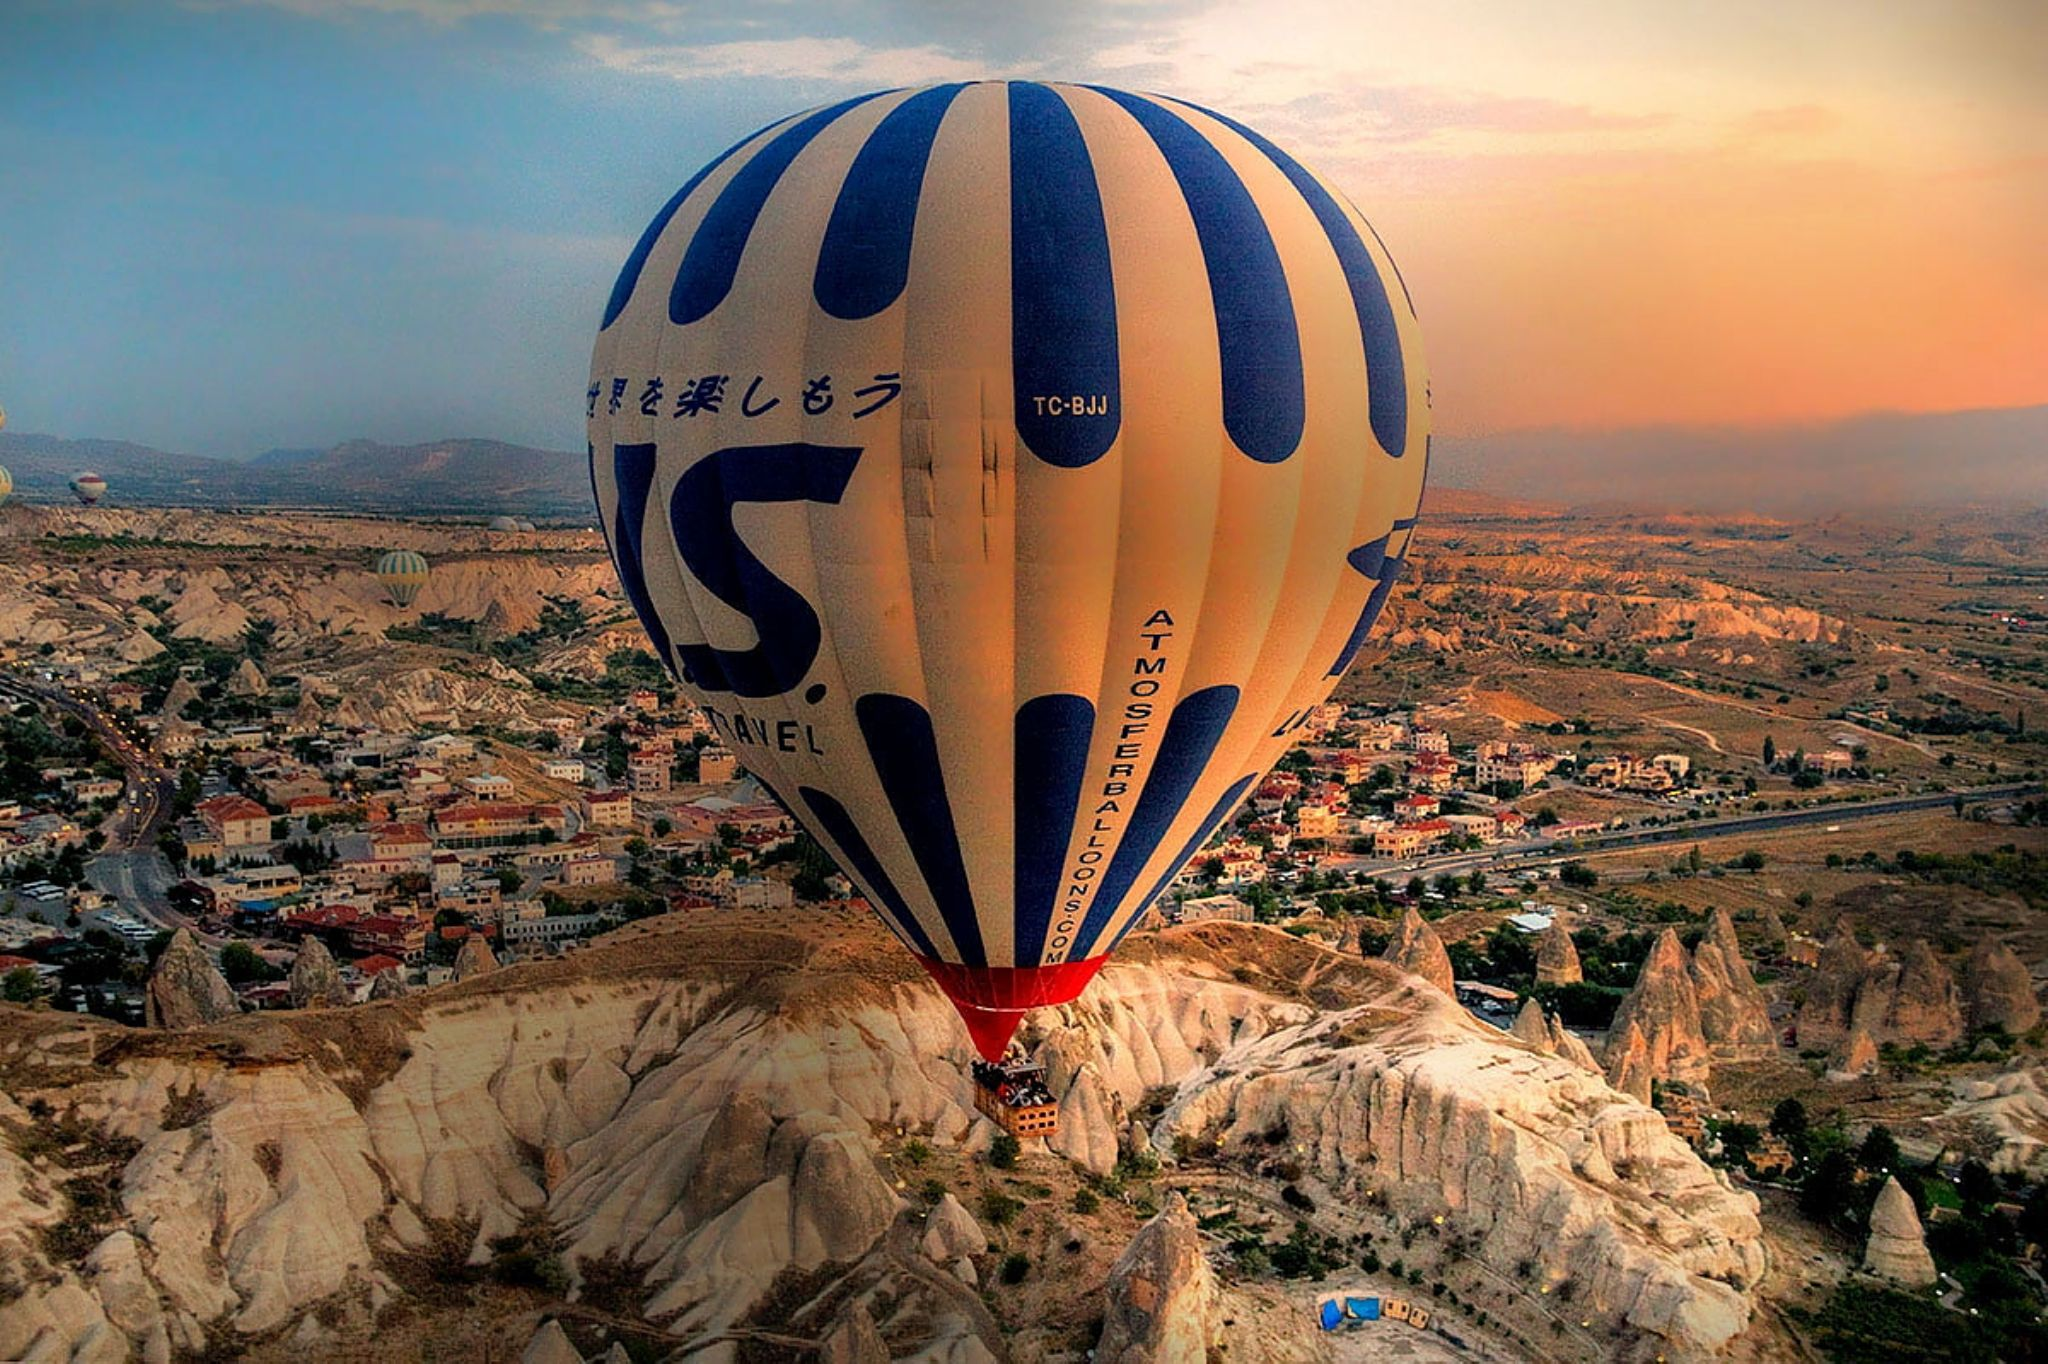 Pictures of Cappadocia by zbych41